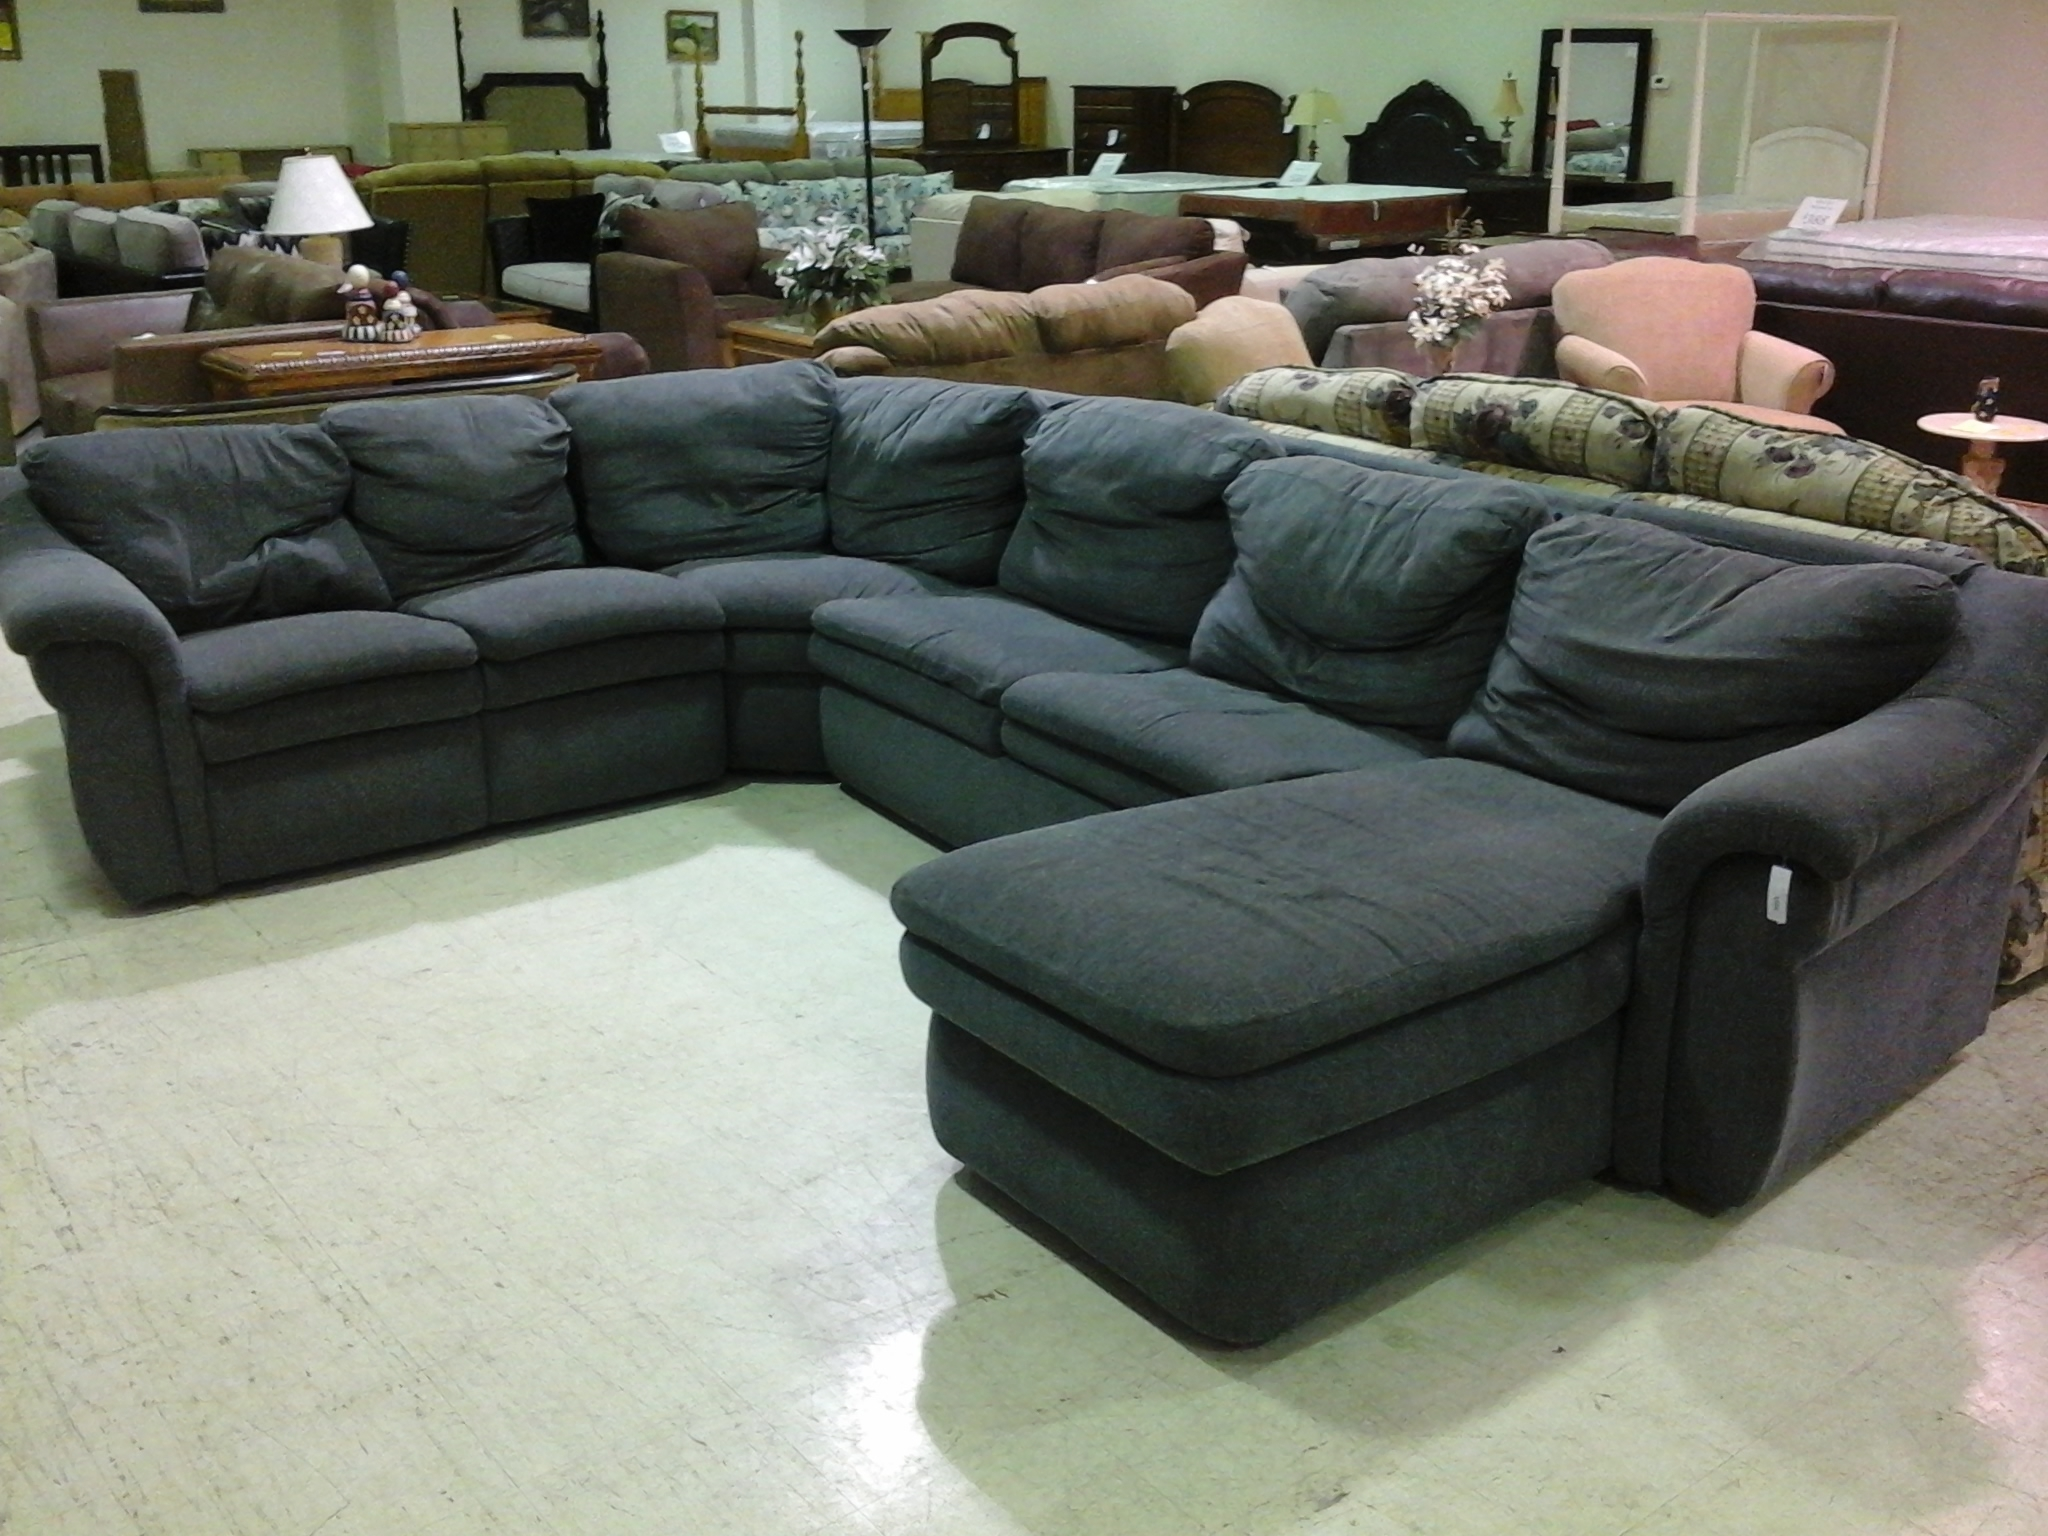 Queen Sofa Sleeper Sectional Microfiber - Cleanupflorida inside Sleek Sectional Sofas